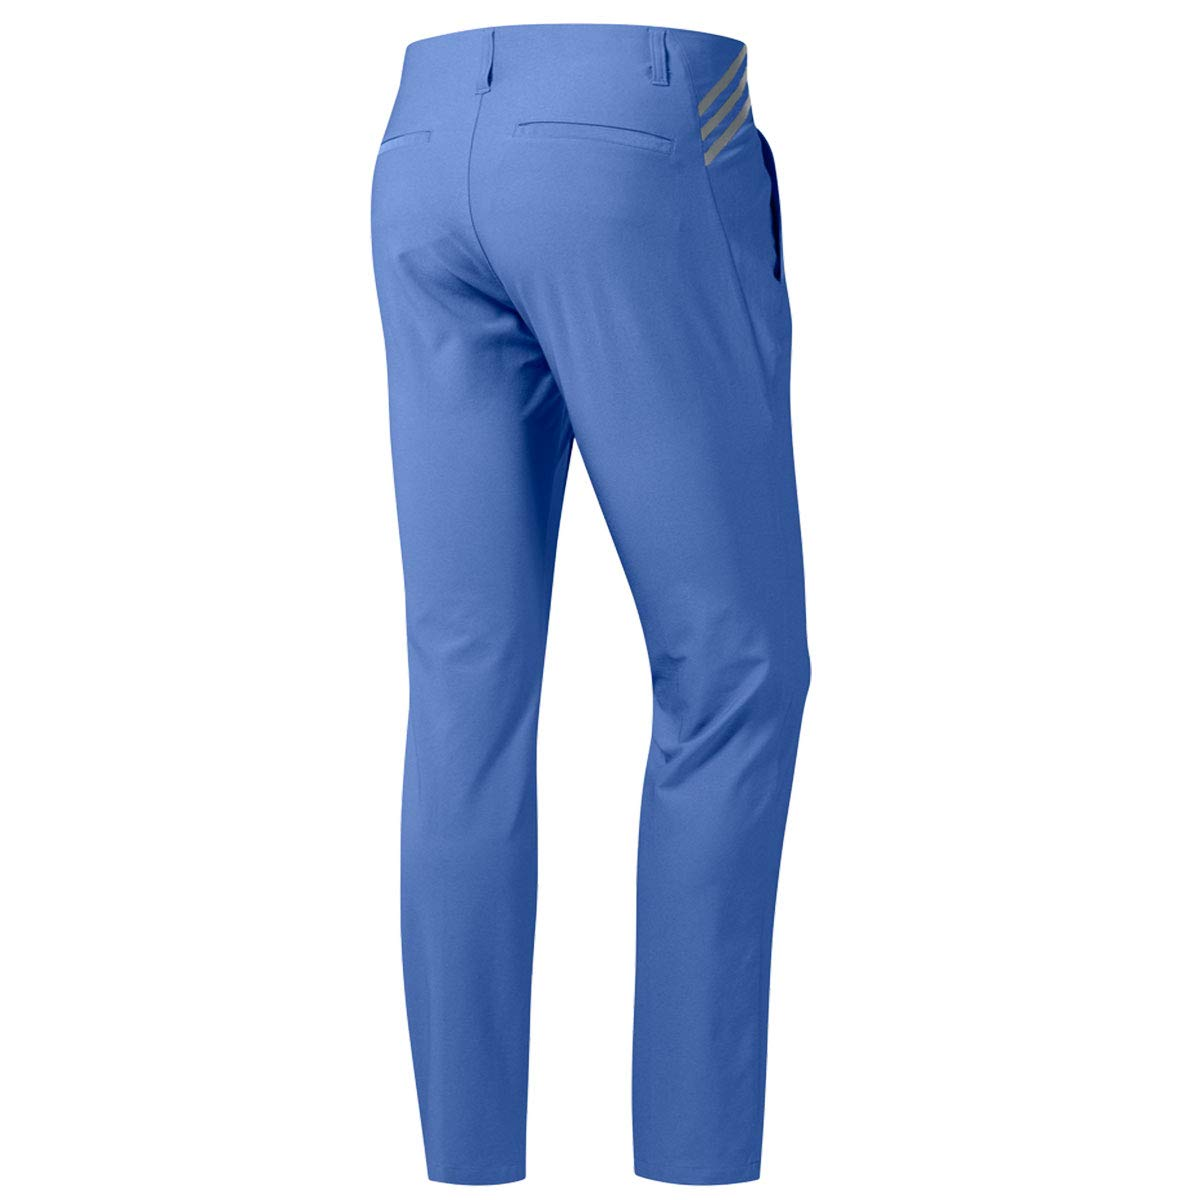 b79d0ae97 Amazon.com : adidas Golf 2019 Mens Ultimate 365 3-Stripes Tapered Stretch  Golf Trousers : Clothing